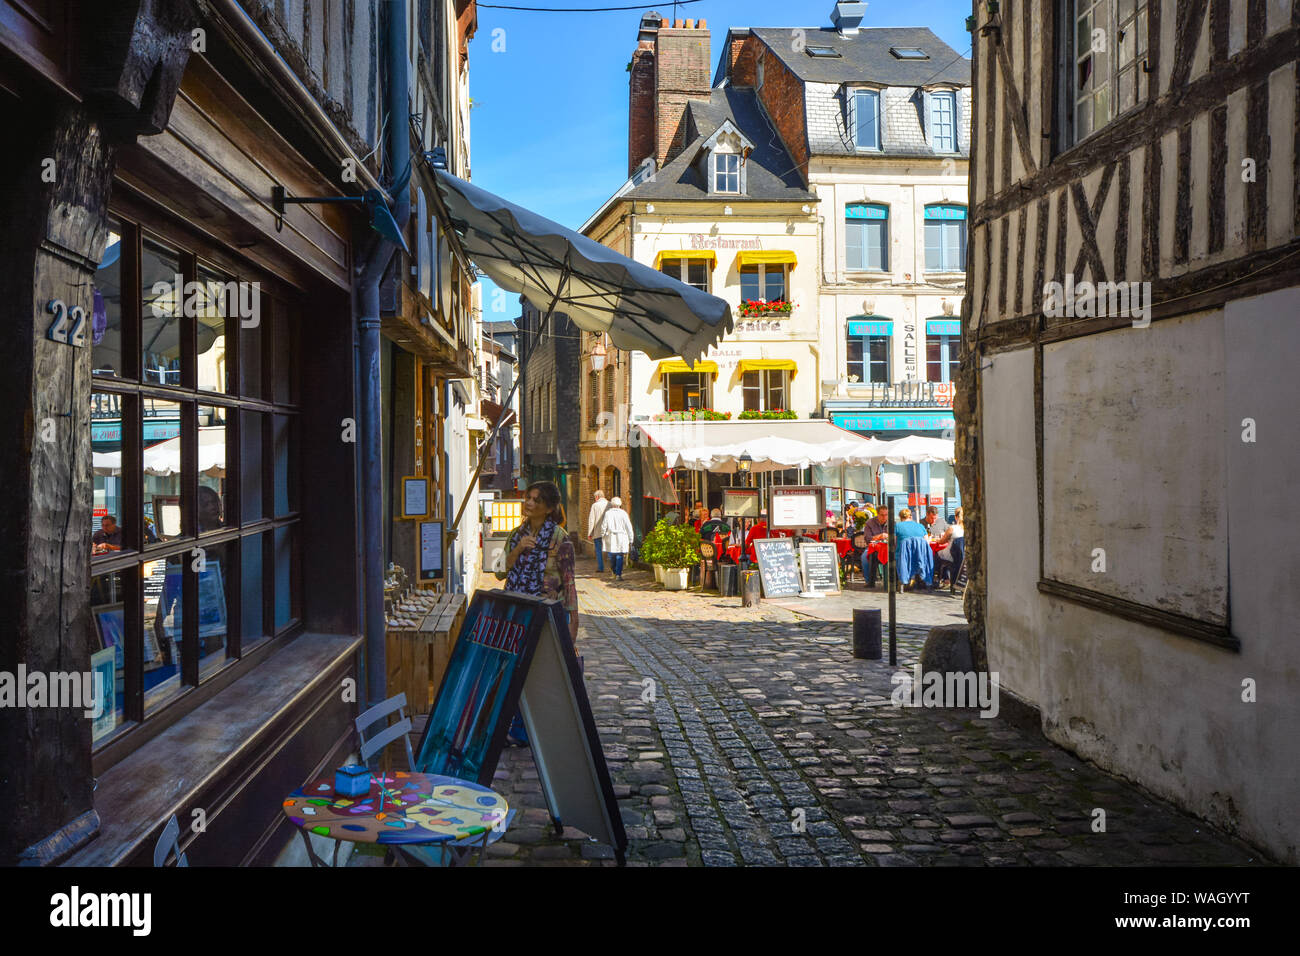 A Woman Window Shops On A Sunny Day In The Normandy Town Of Honfleur France With An Outdoor Sidewalk Cafe Behind Her Stock Photo Alamy